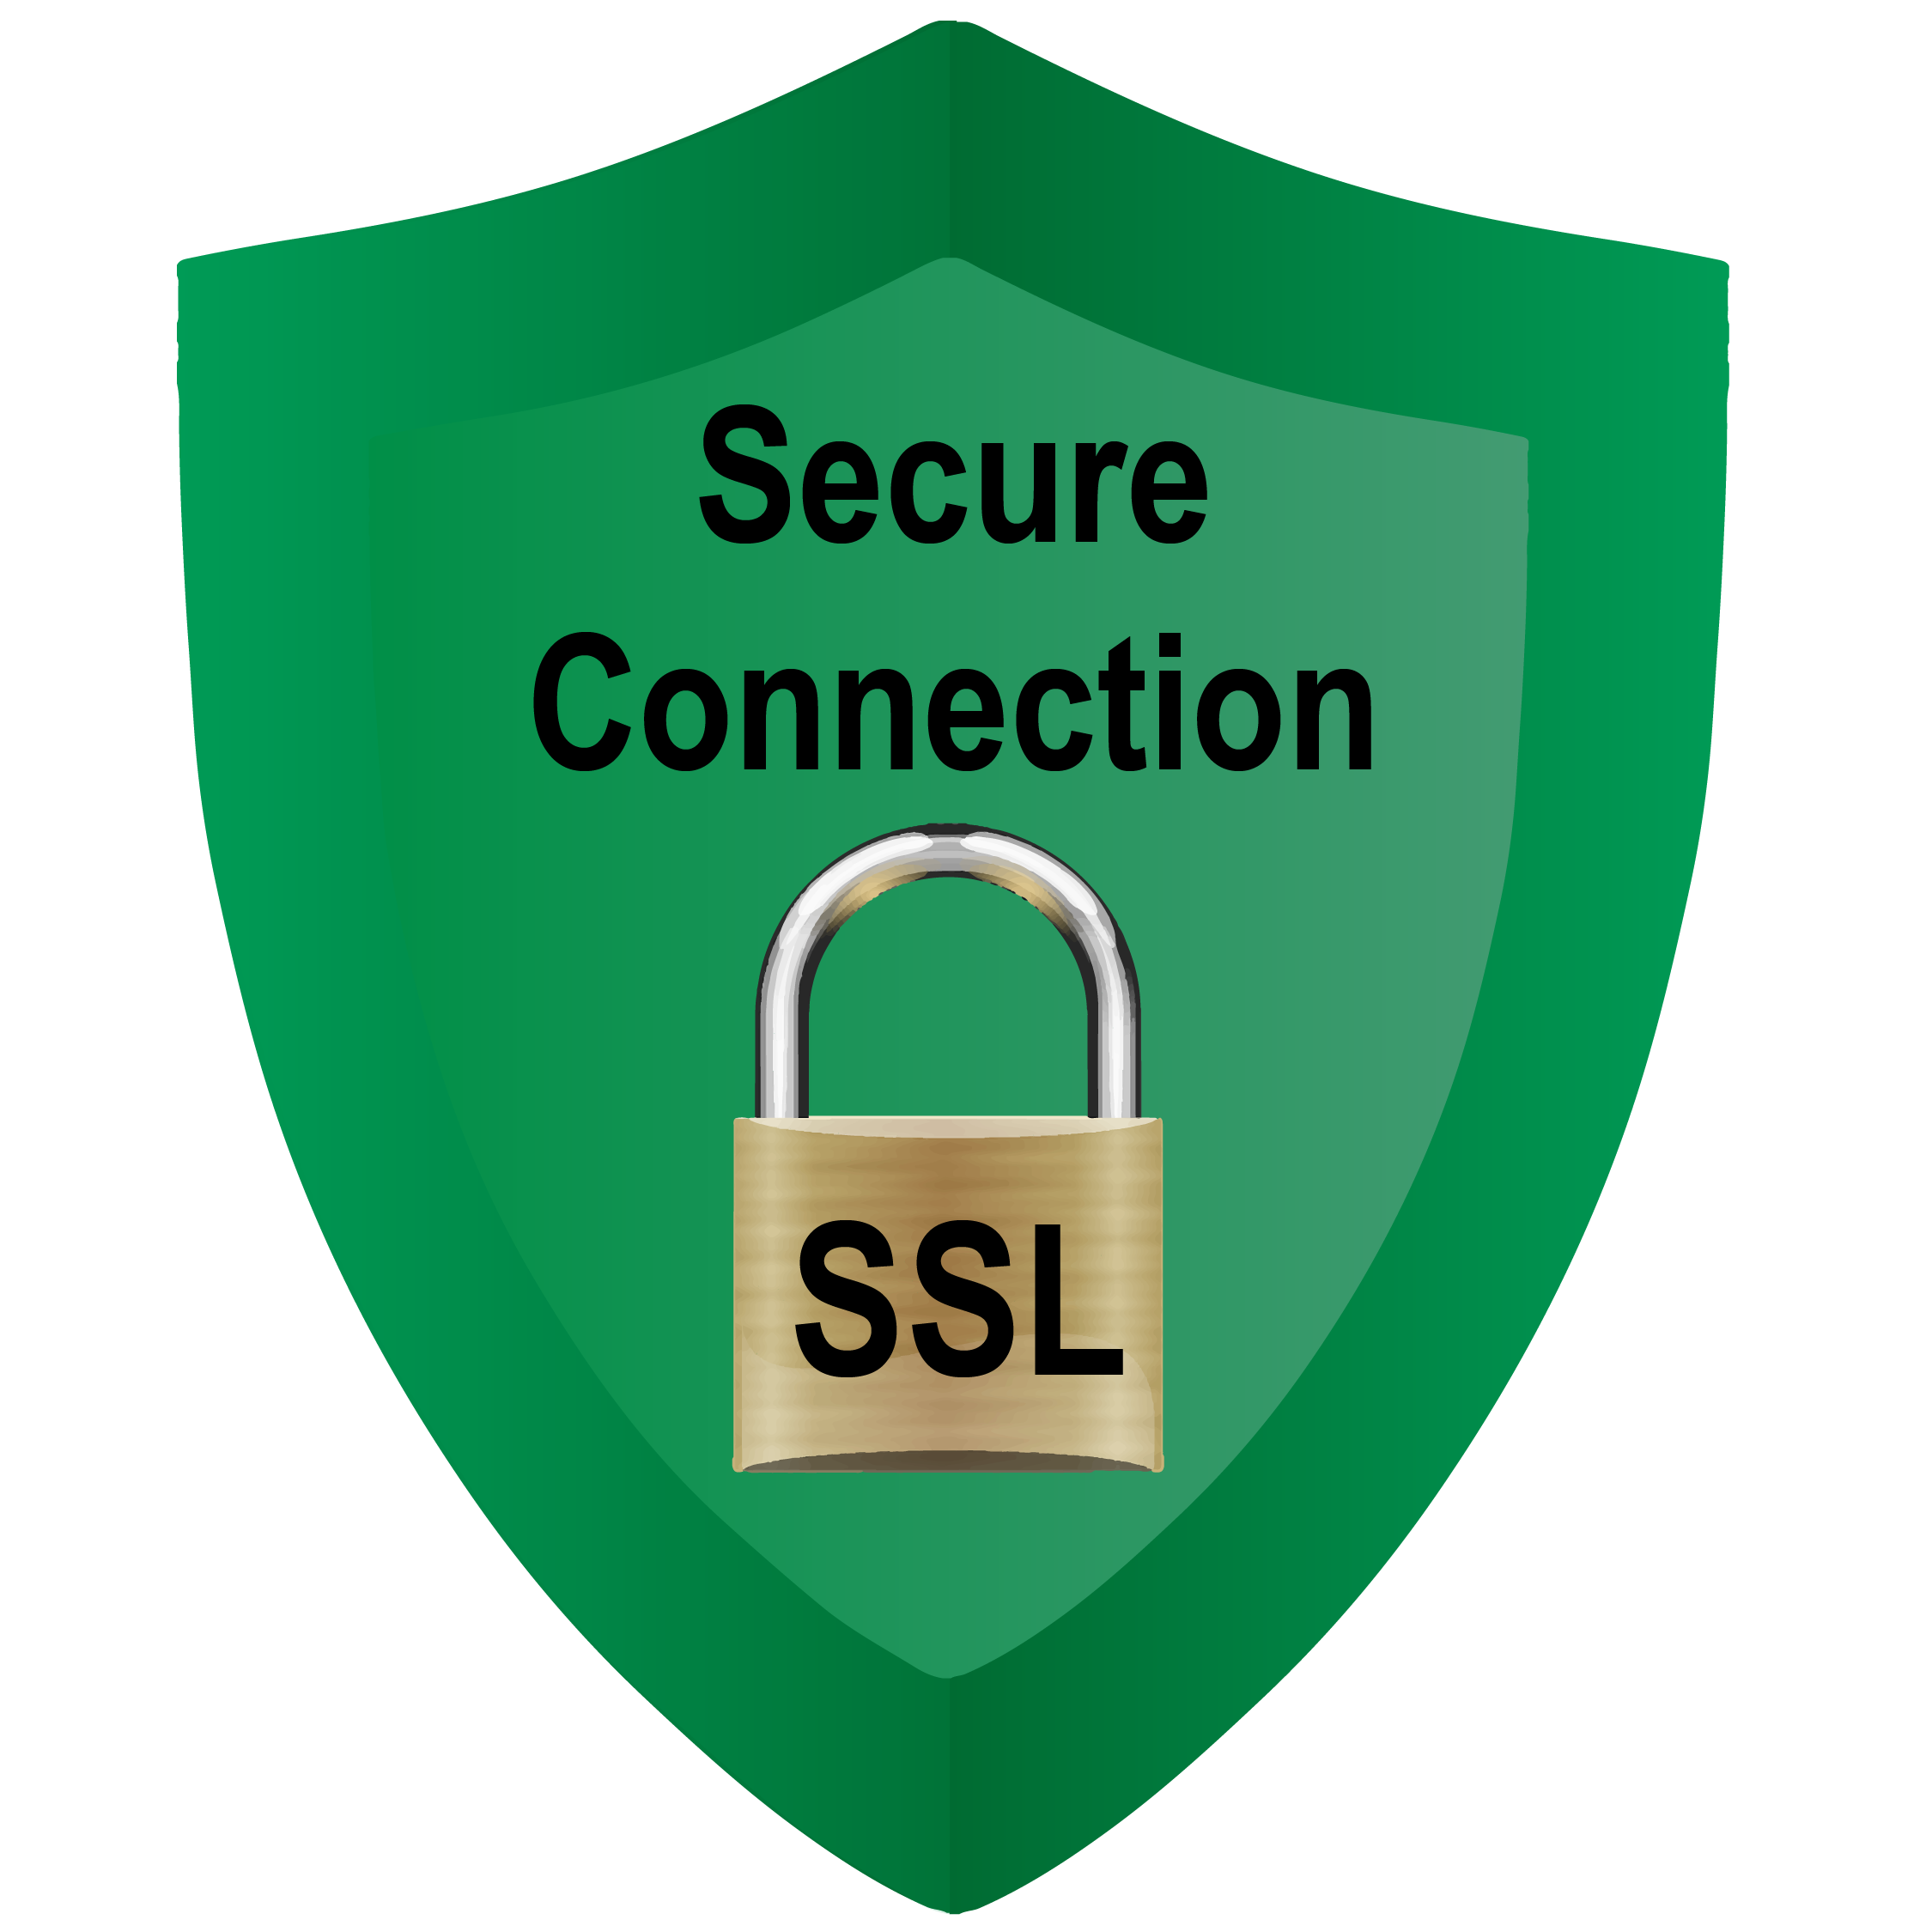 20190708-SSL-Button-01